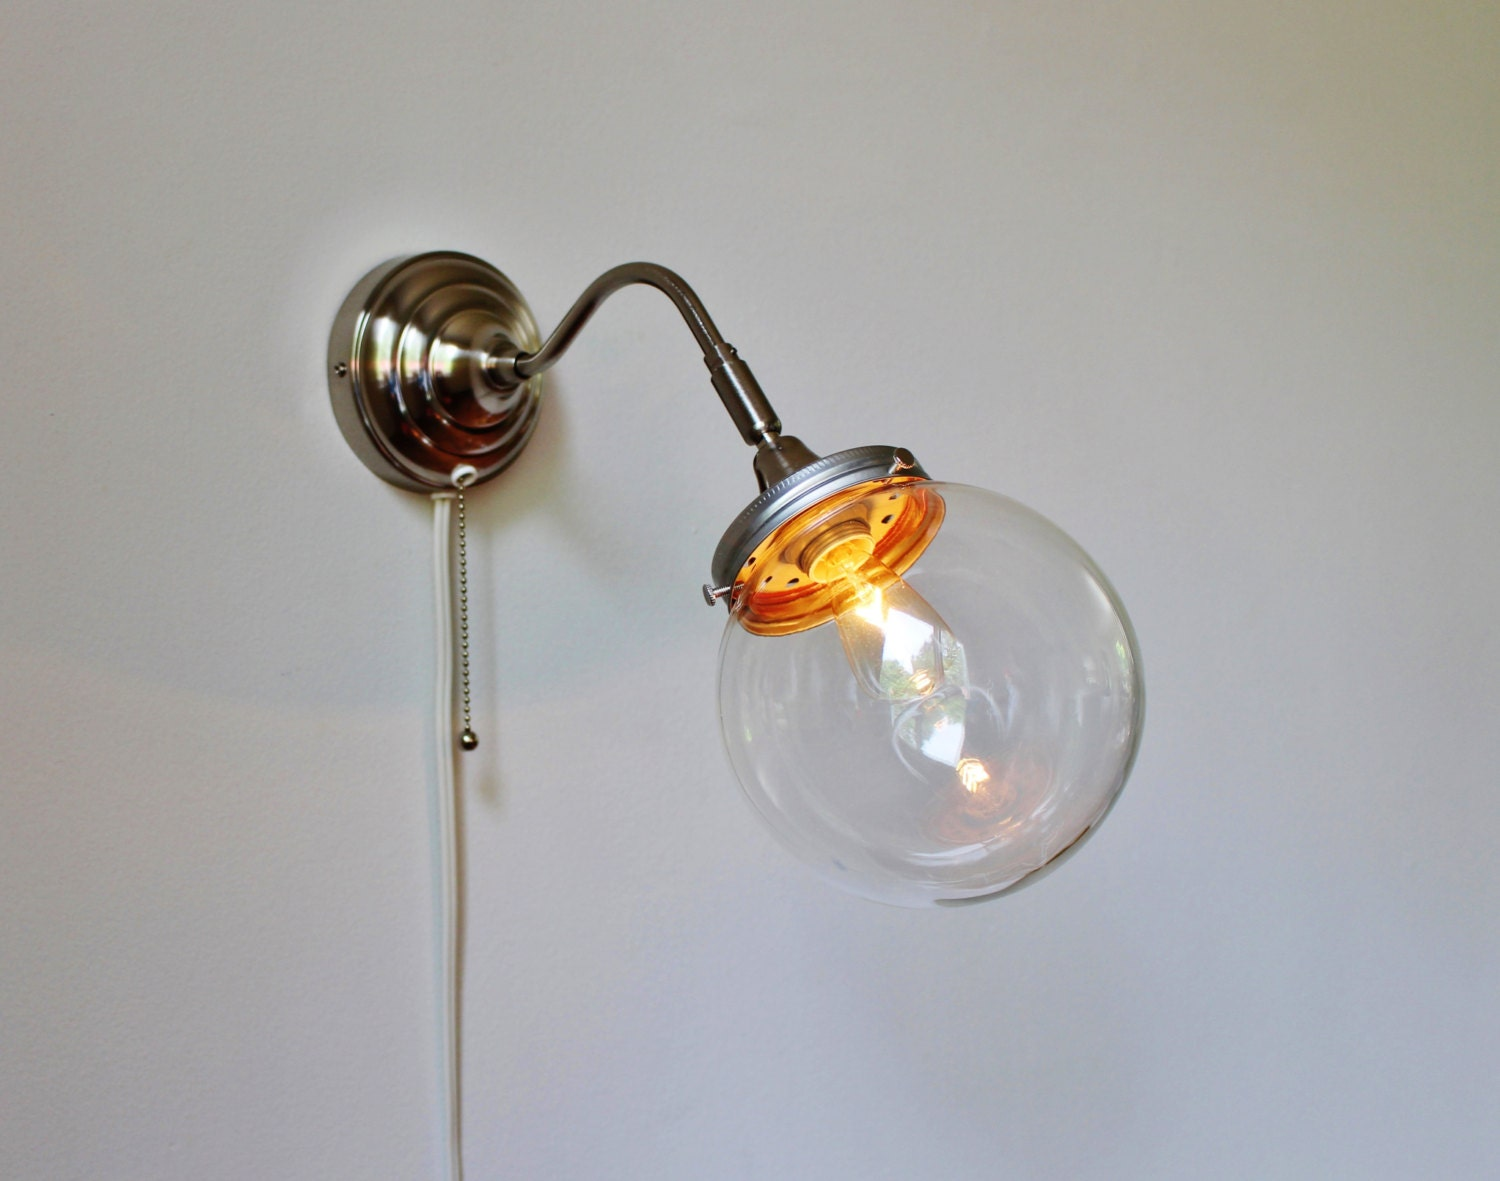 Wall Sconce With Crystal Ball : Crystal Ball Sconce Lamp Stainless Steel Gooseneck Wall